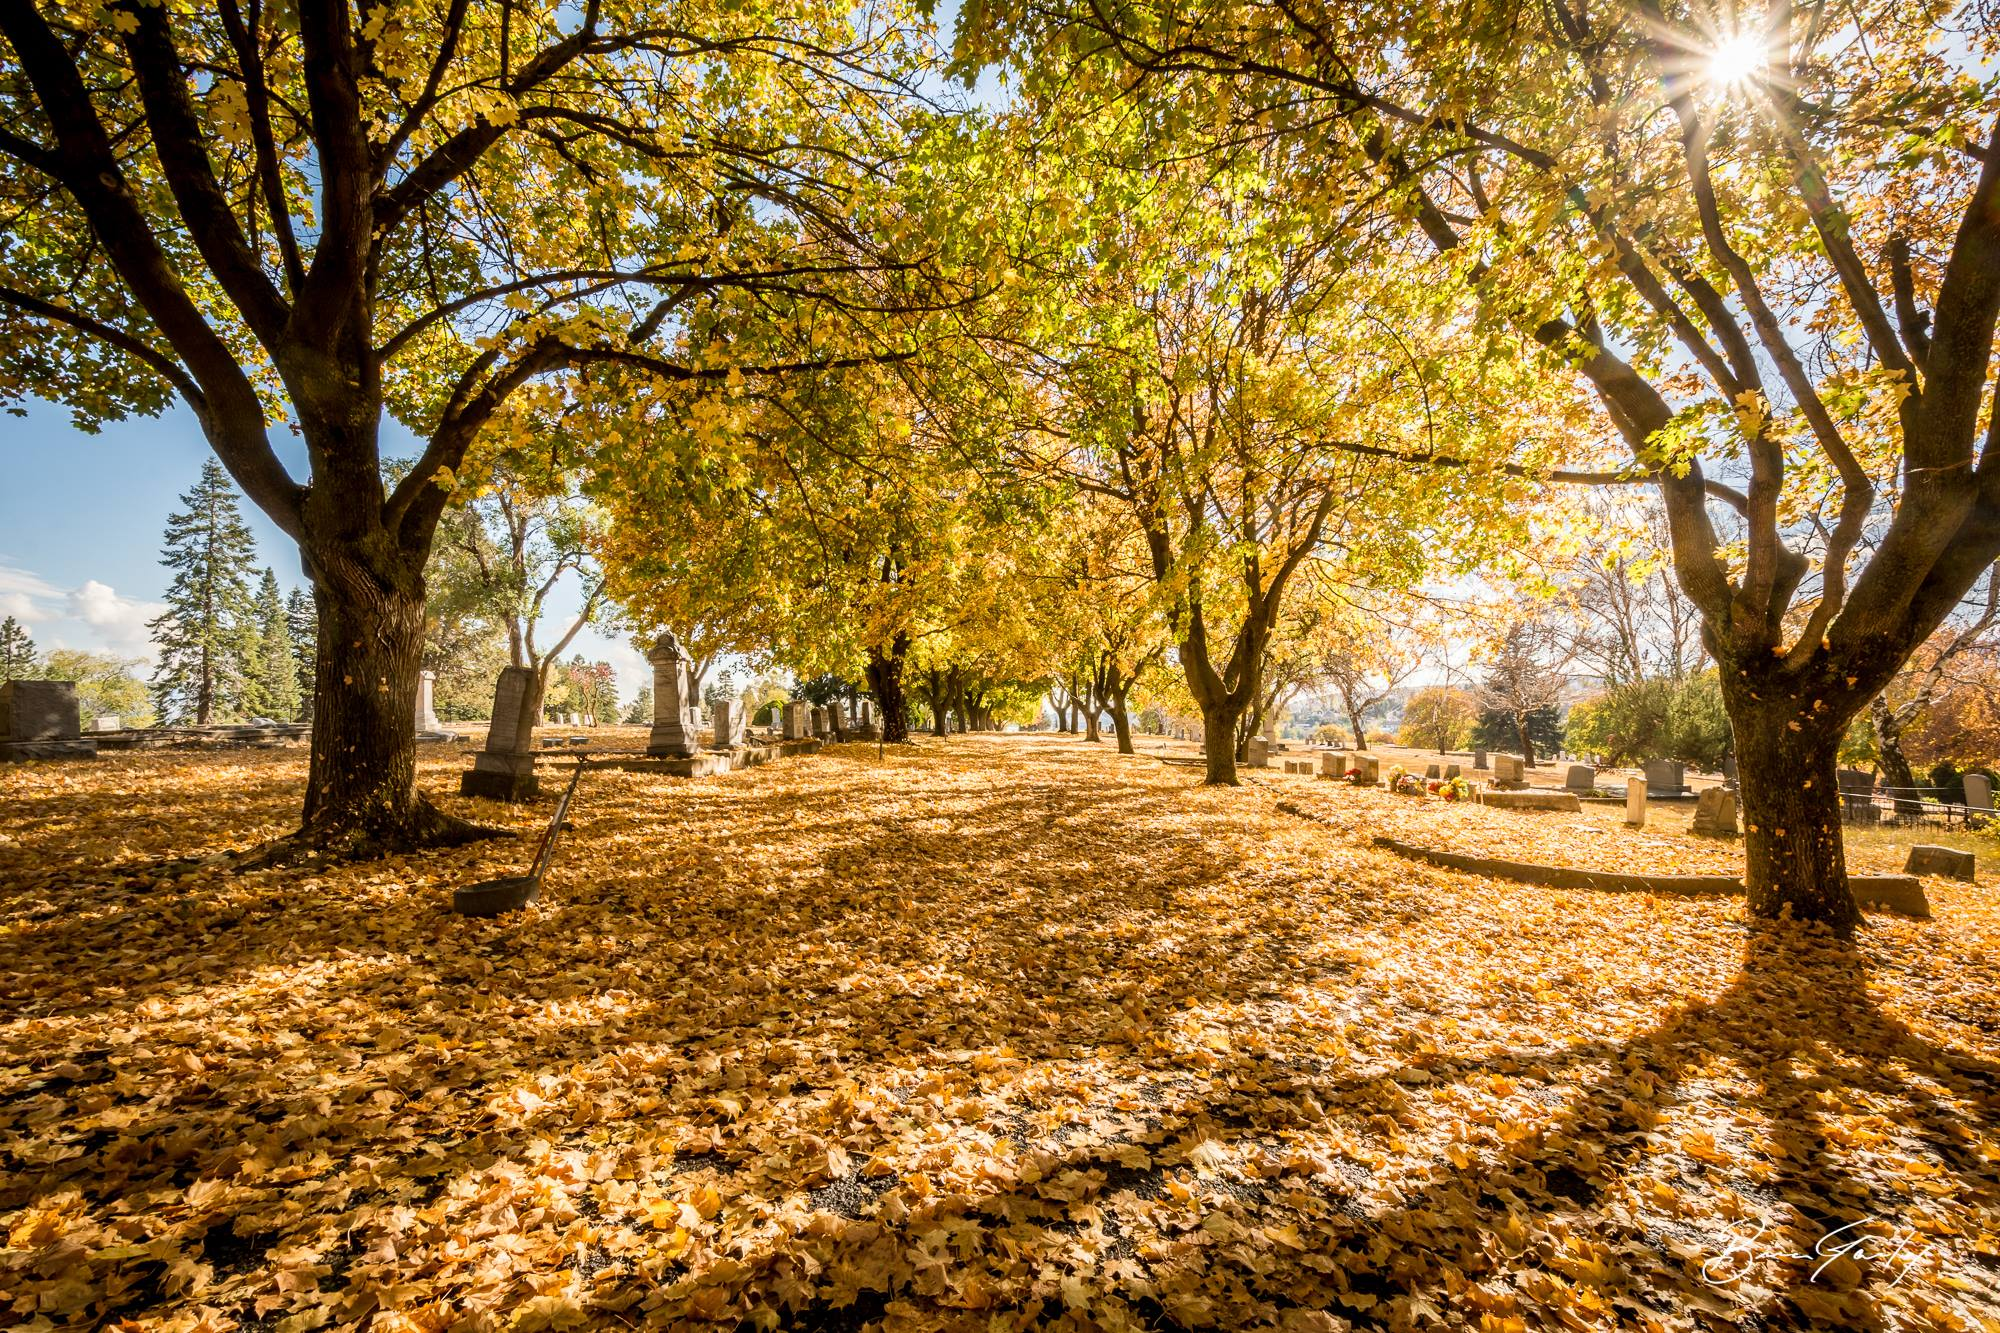 Fall Colors at the Linkville Cemetery - Image: Brian Gailey